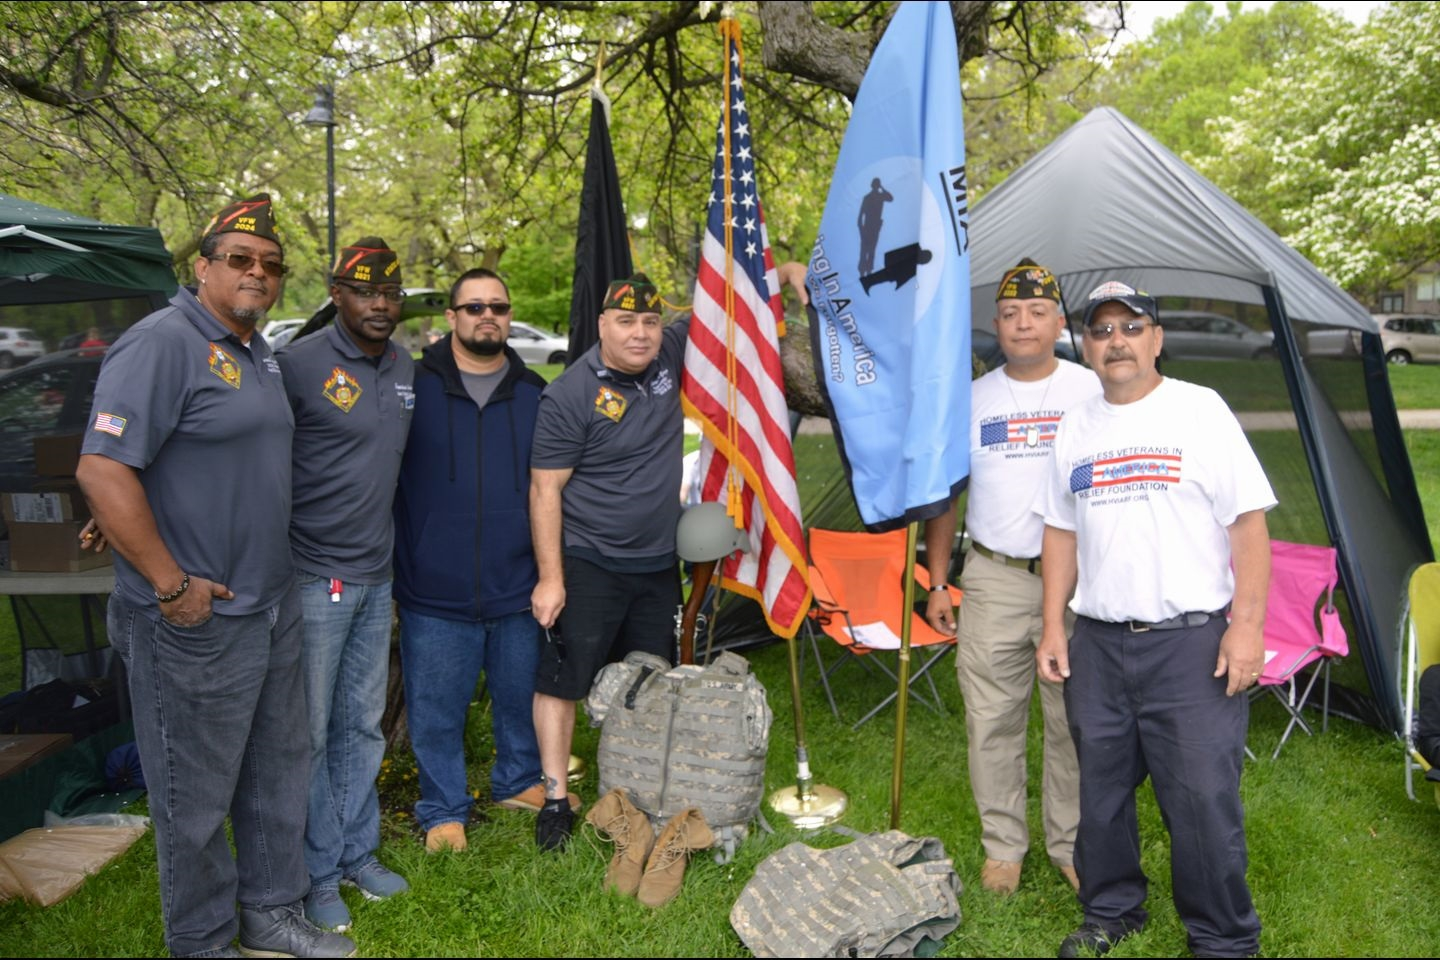 Team VFW Illinois at Ruck March